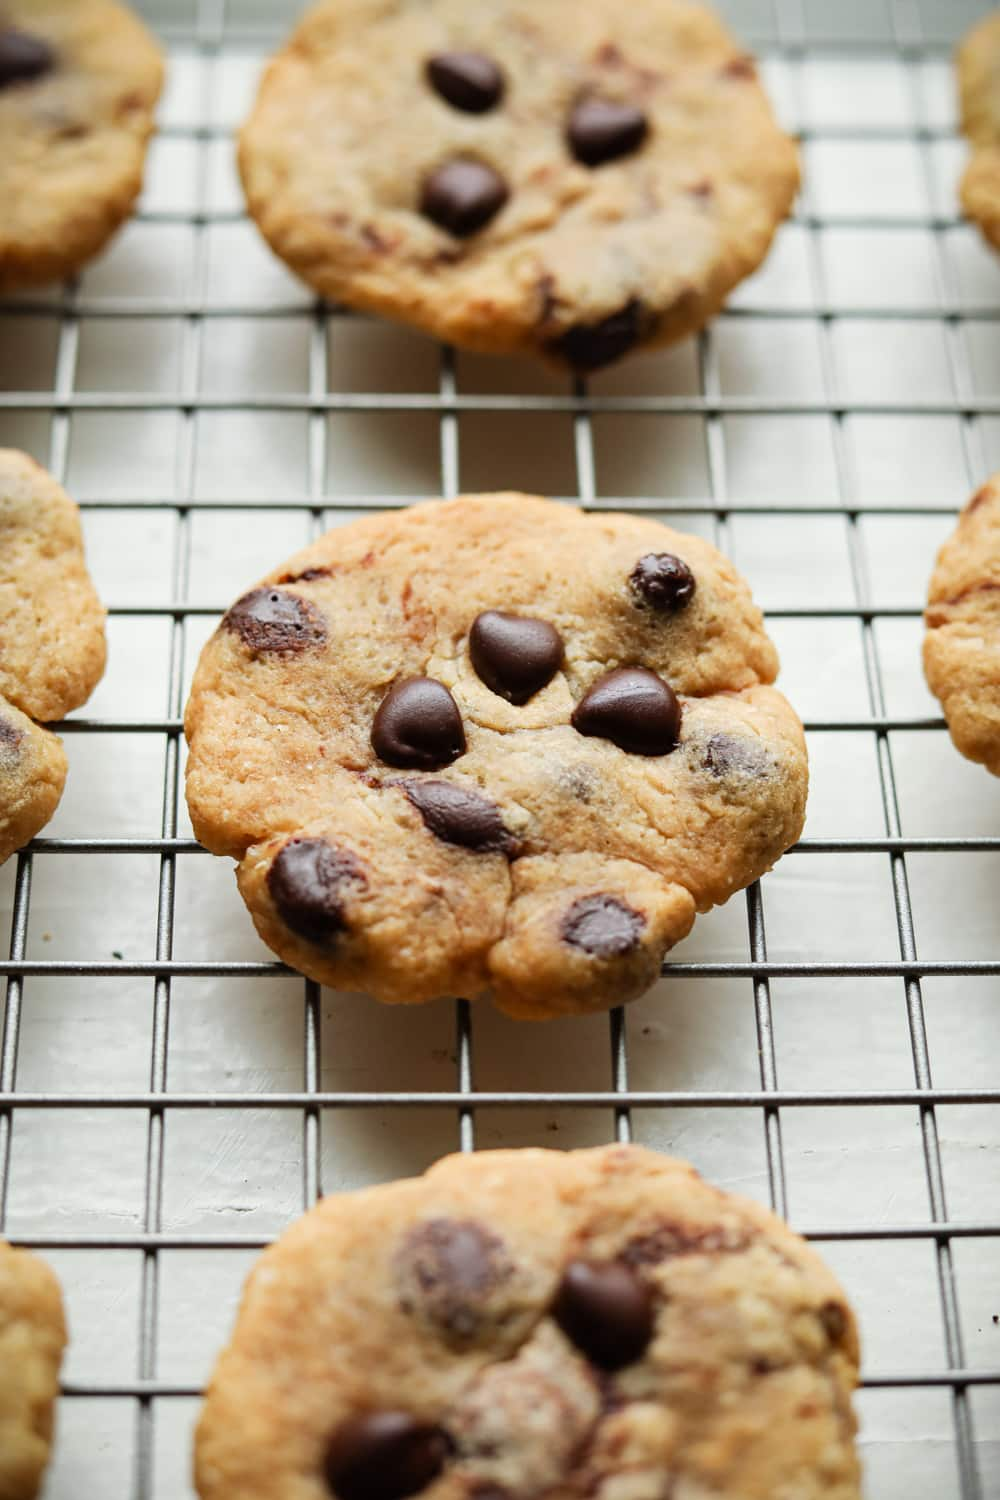 Chocolate chip cookies on a wire rack.